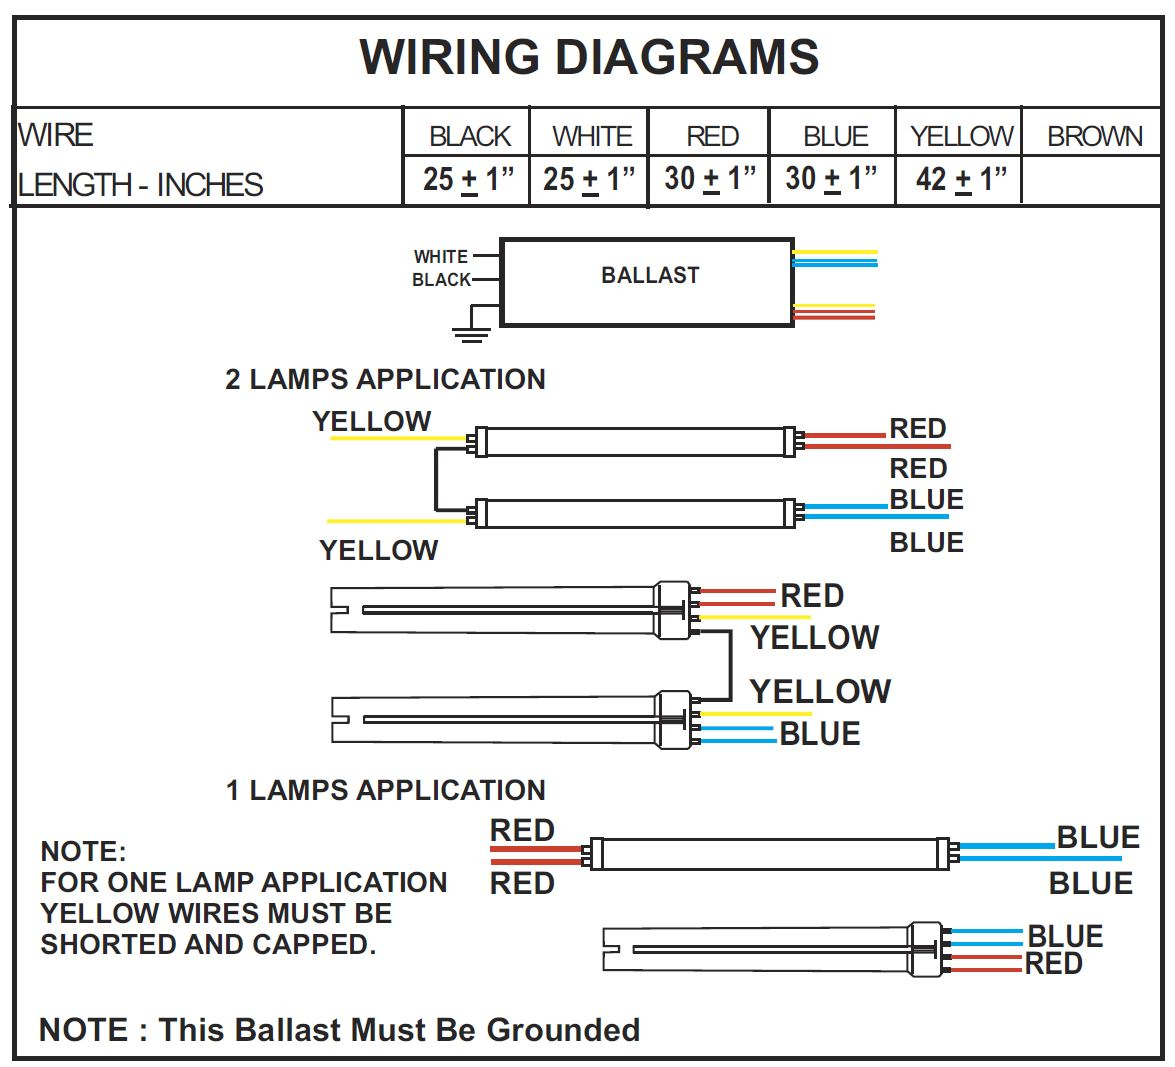 Diagram T5 Ballast Wiring Diagram Full Version Hd Quality Wiring Diagram Blogxkober Unvulcanodilibri It